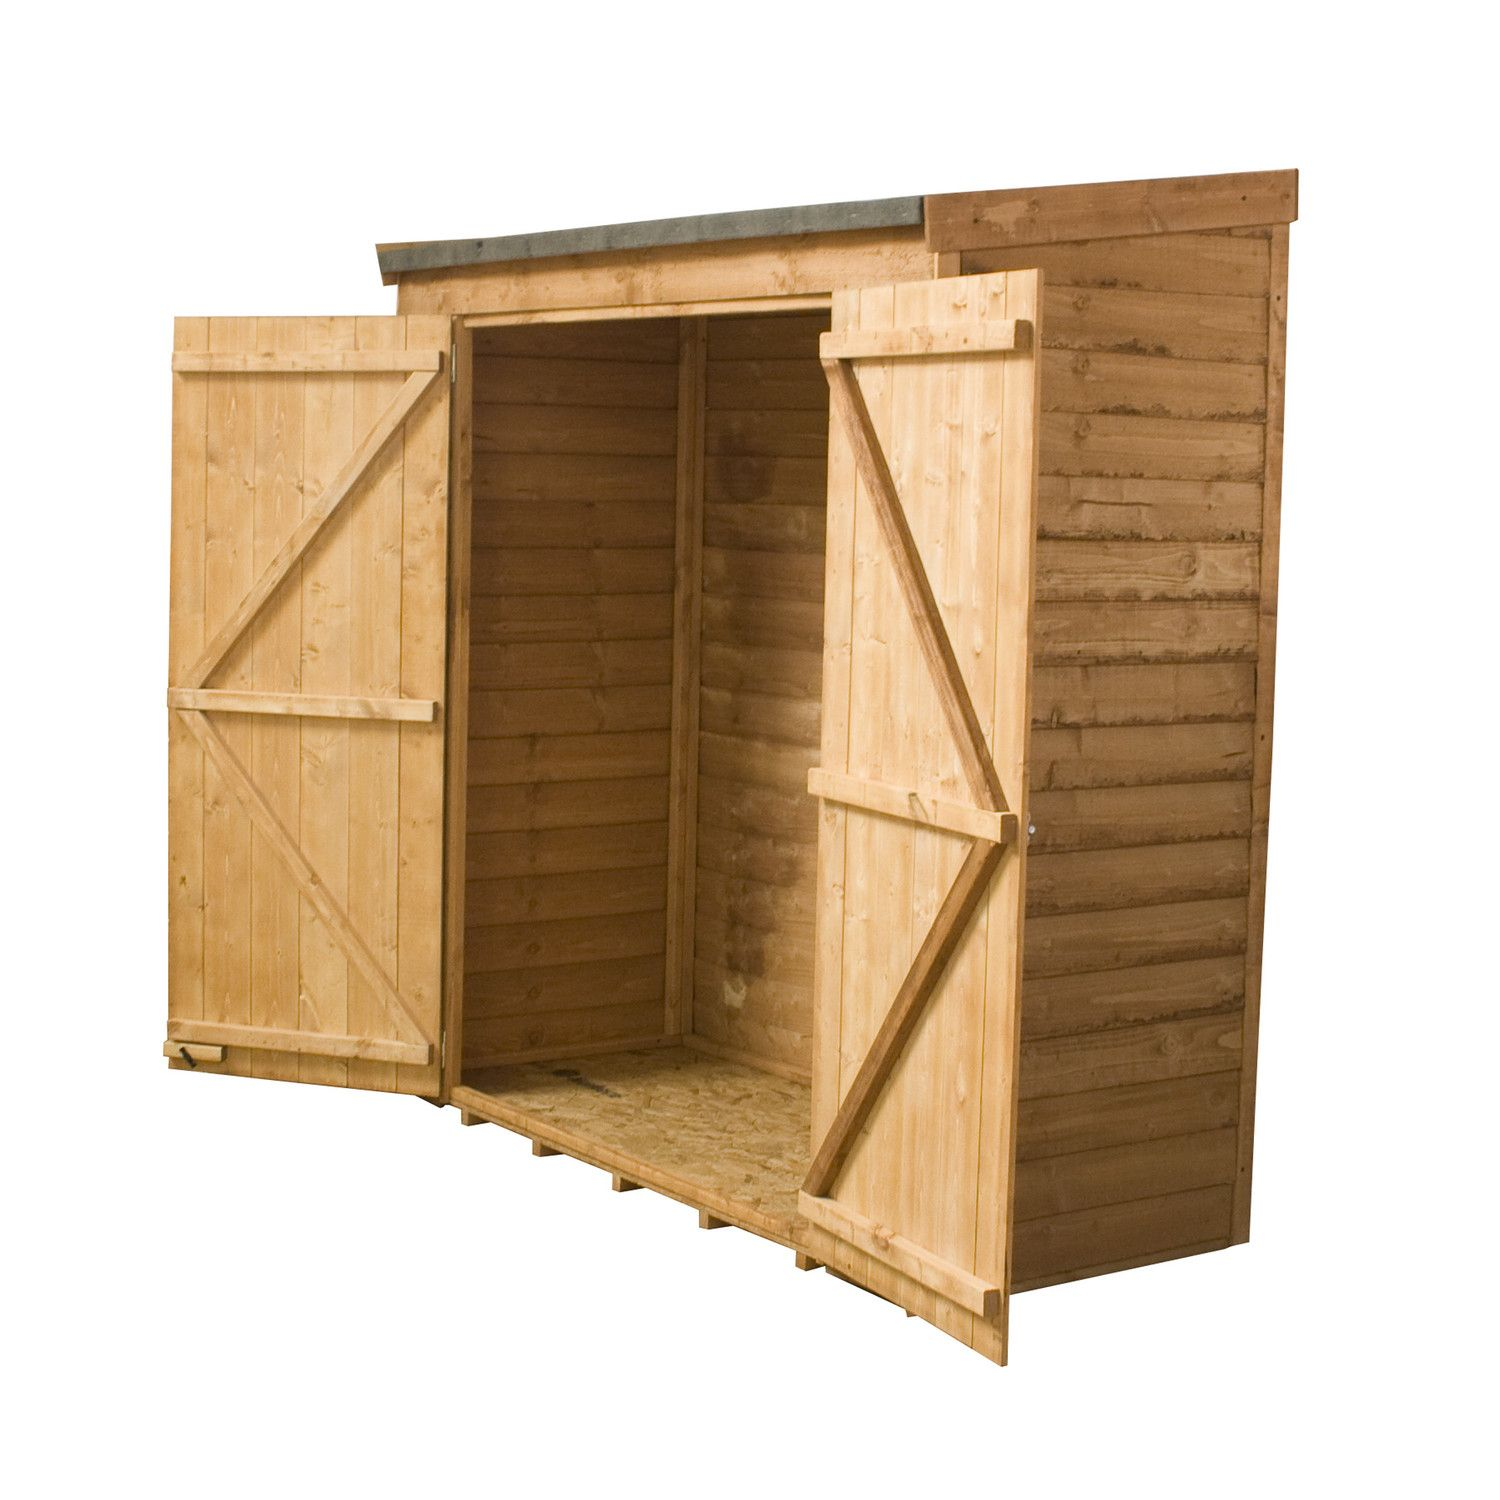 Garden Sheds 3ft Wide mercia garden products 6ft w x 2.6ft d wooden lean-to shed